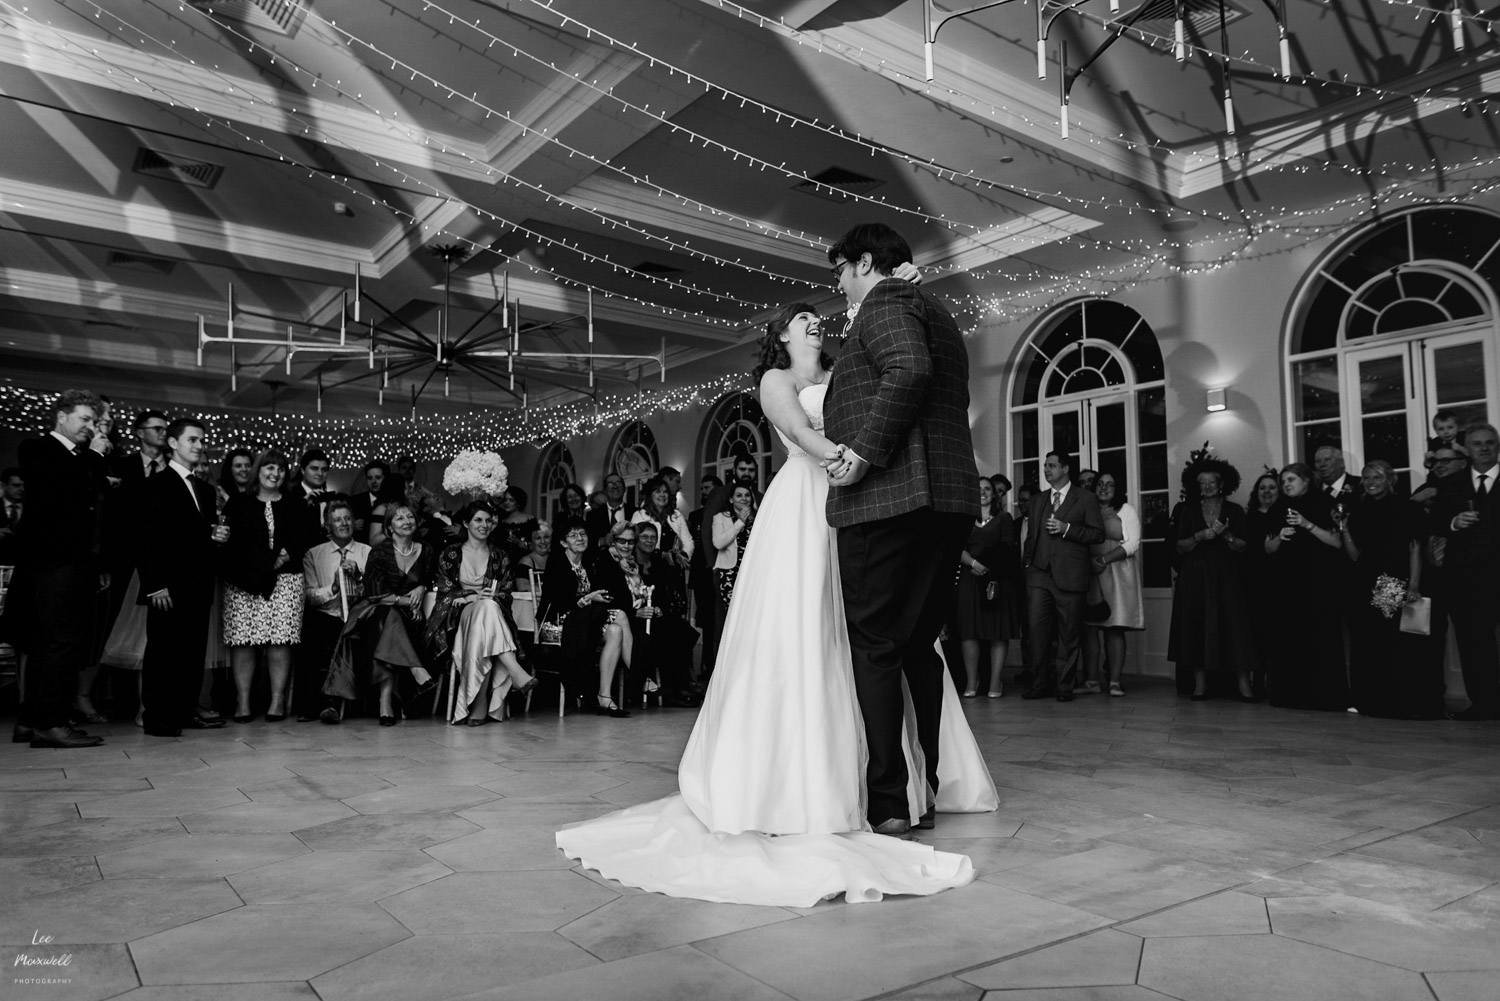 First dance at Deer Park wide angle